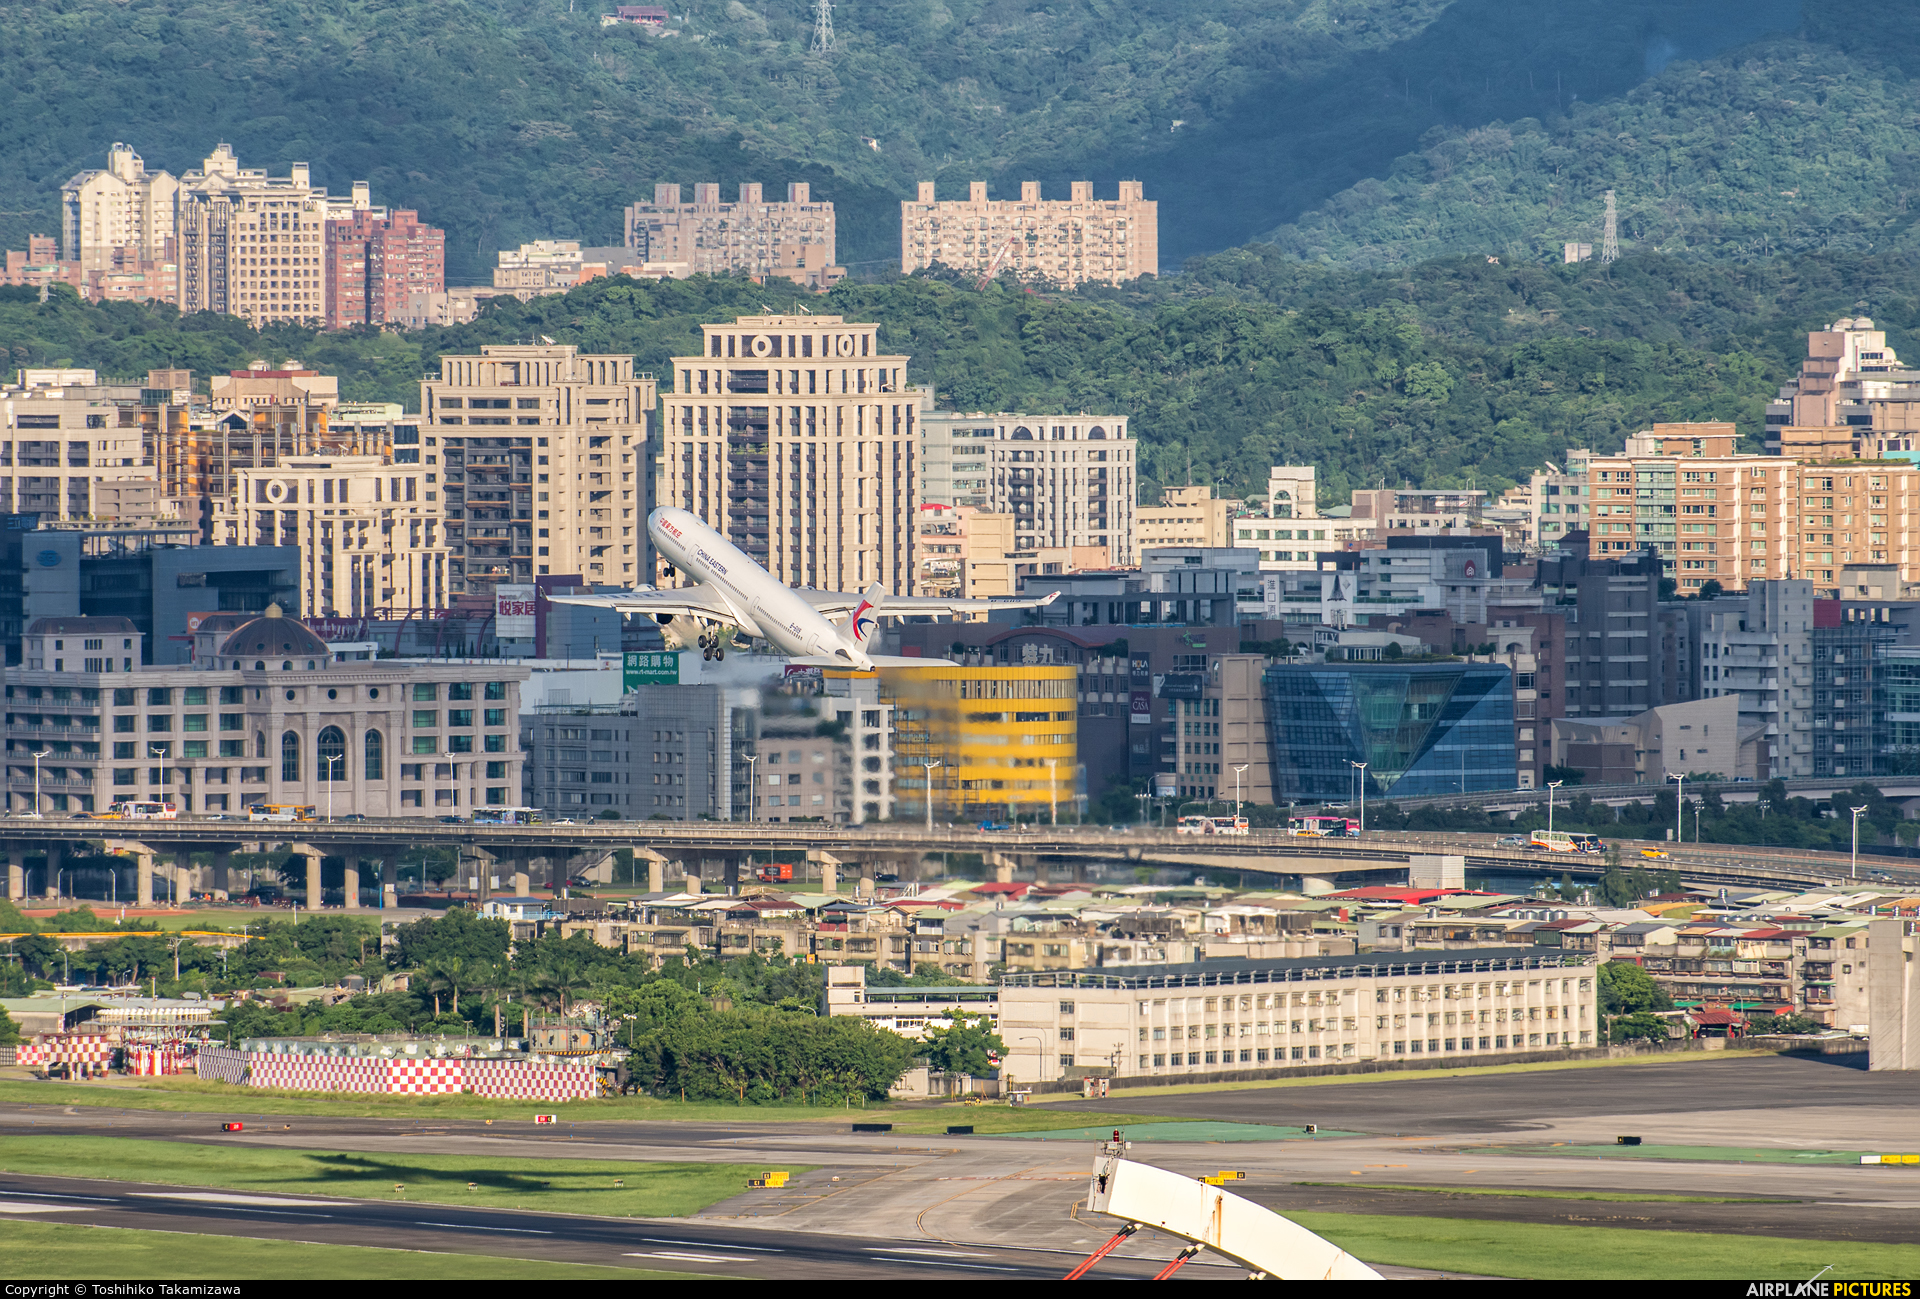 - Airport Overview B-6119 aircraft at Taipei - Sung Shan